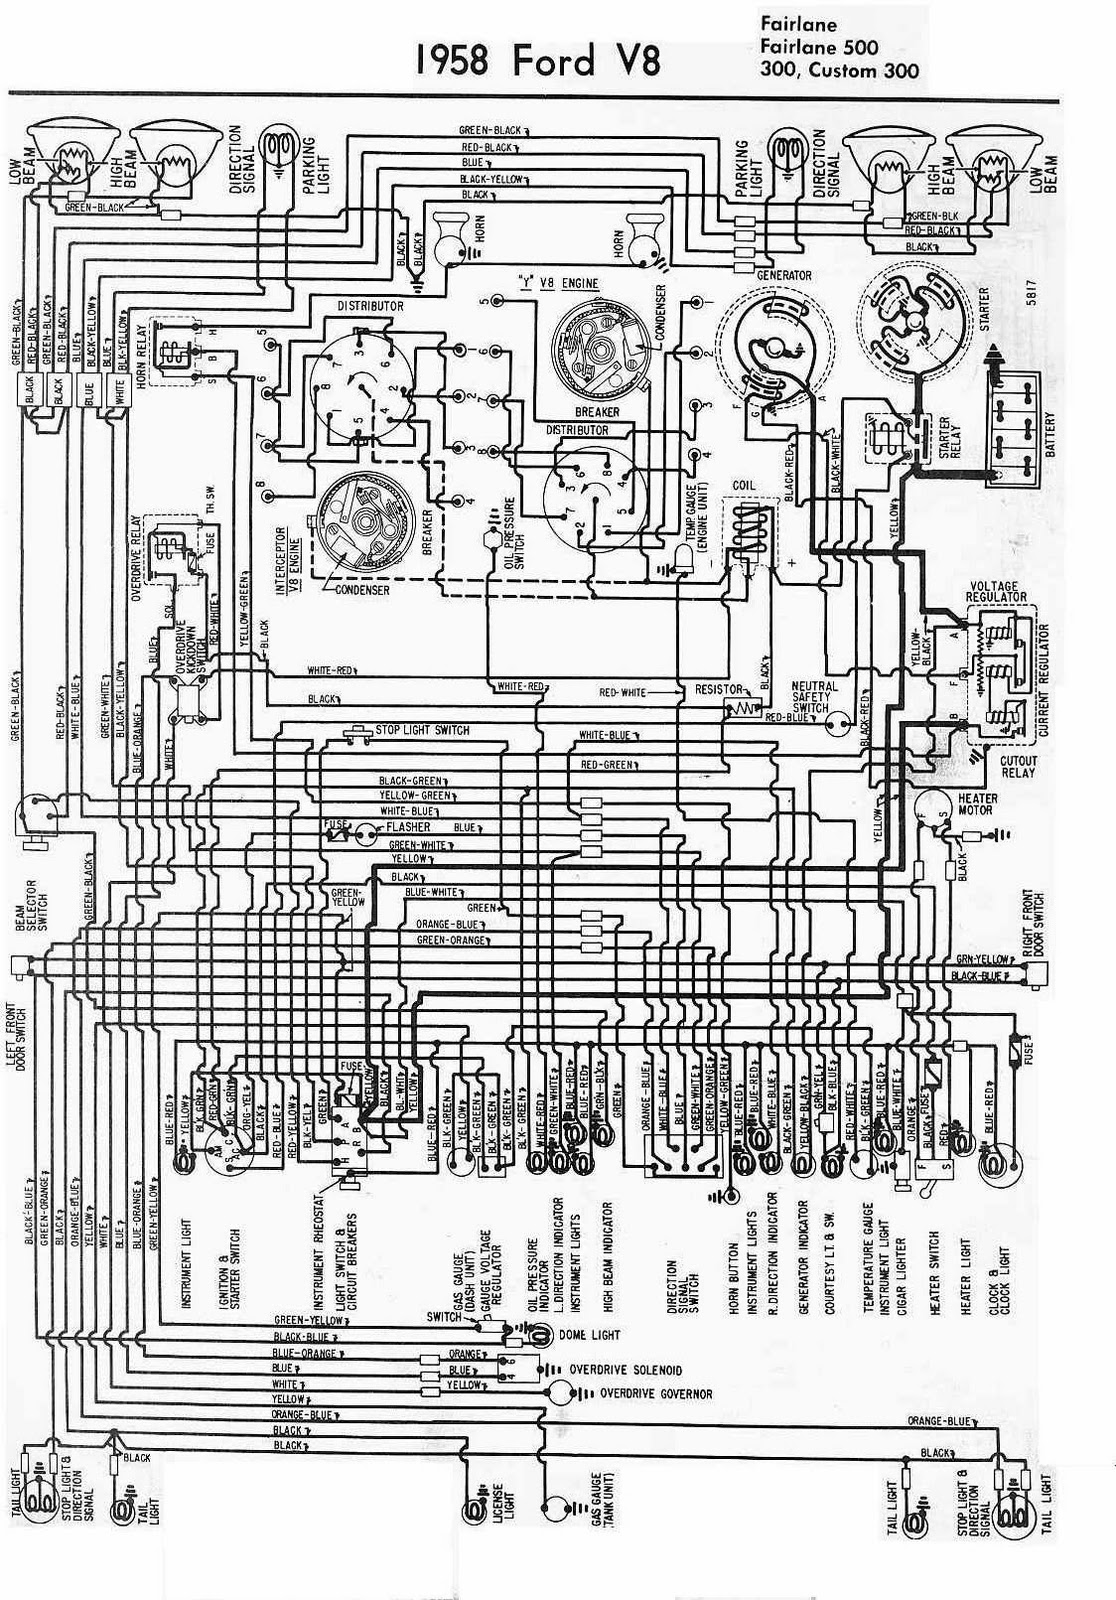 1960 ford wiring diagram wiring schematic diagram